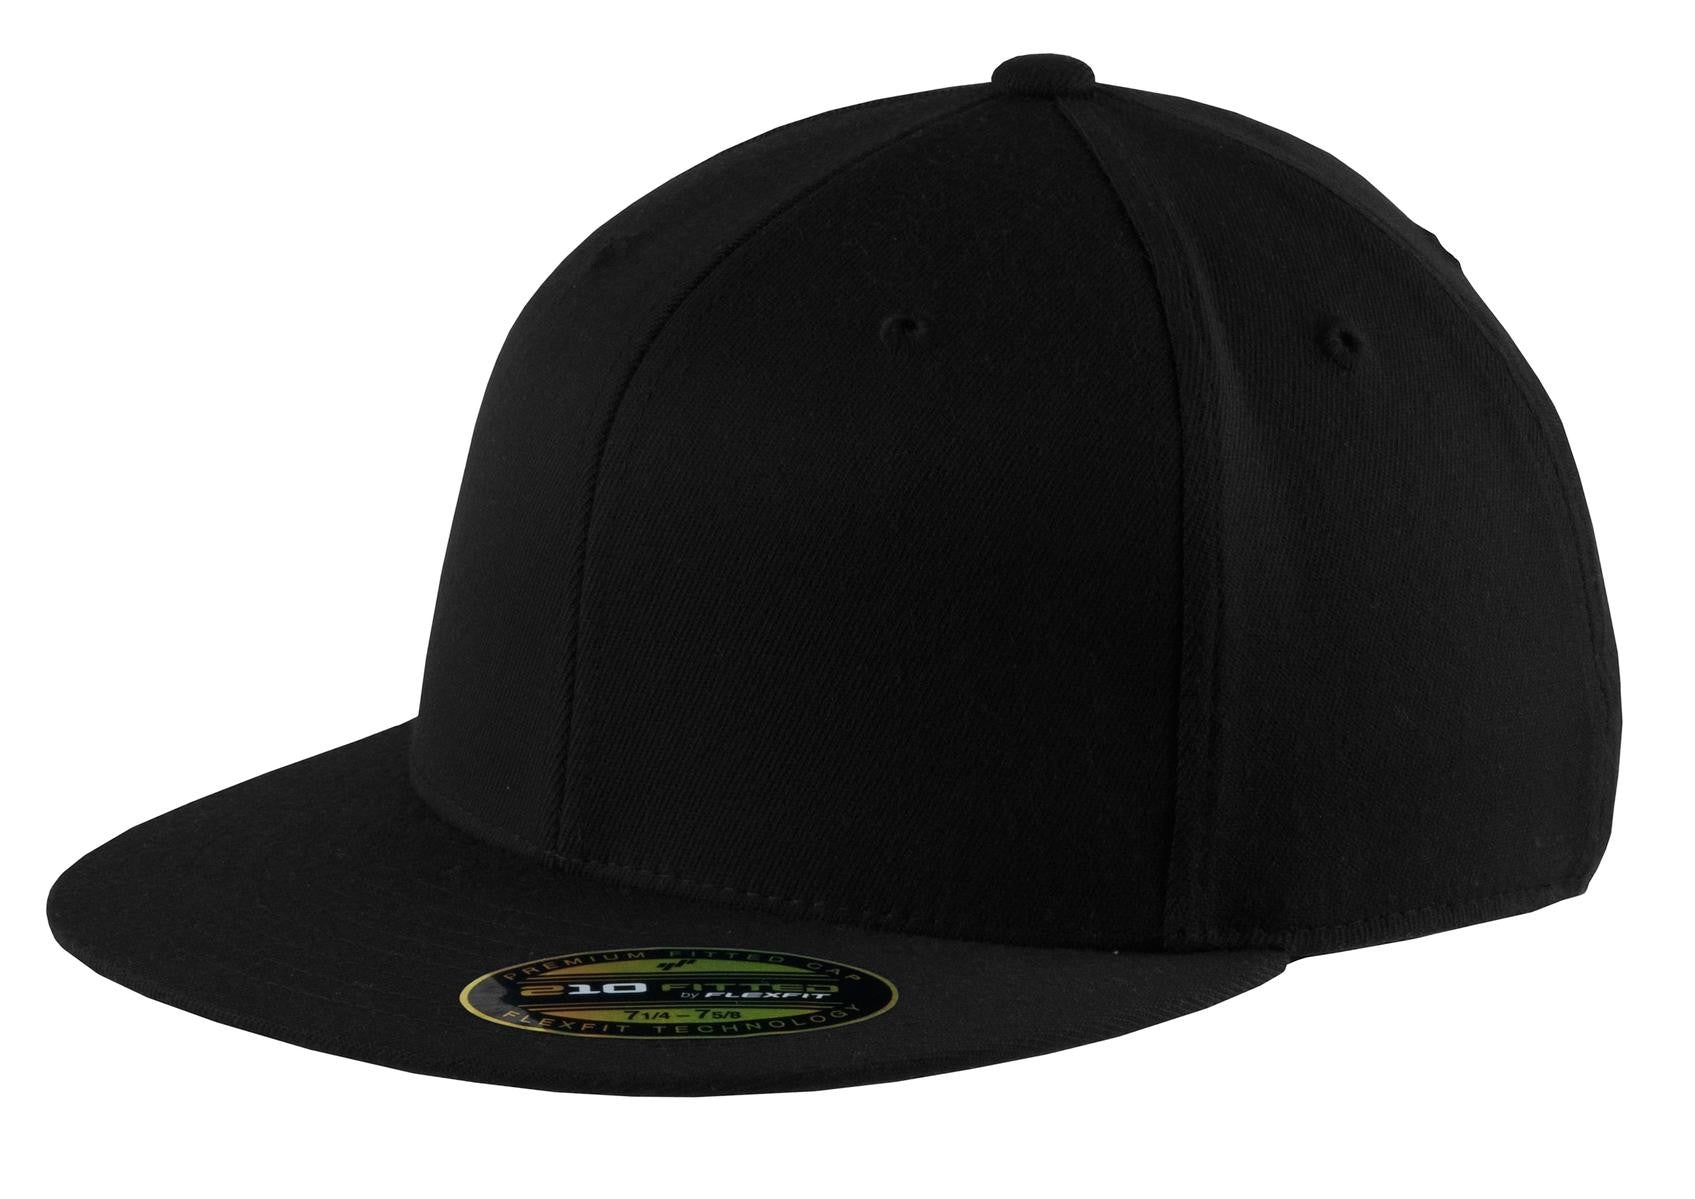 Port Authority® Flexfit® Flat Bill Cap. C808 – Embroidery Creations 01008f0545be